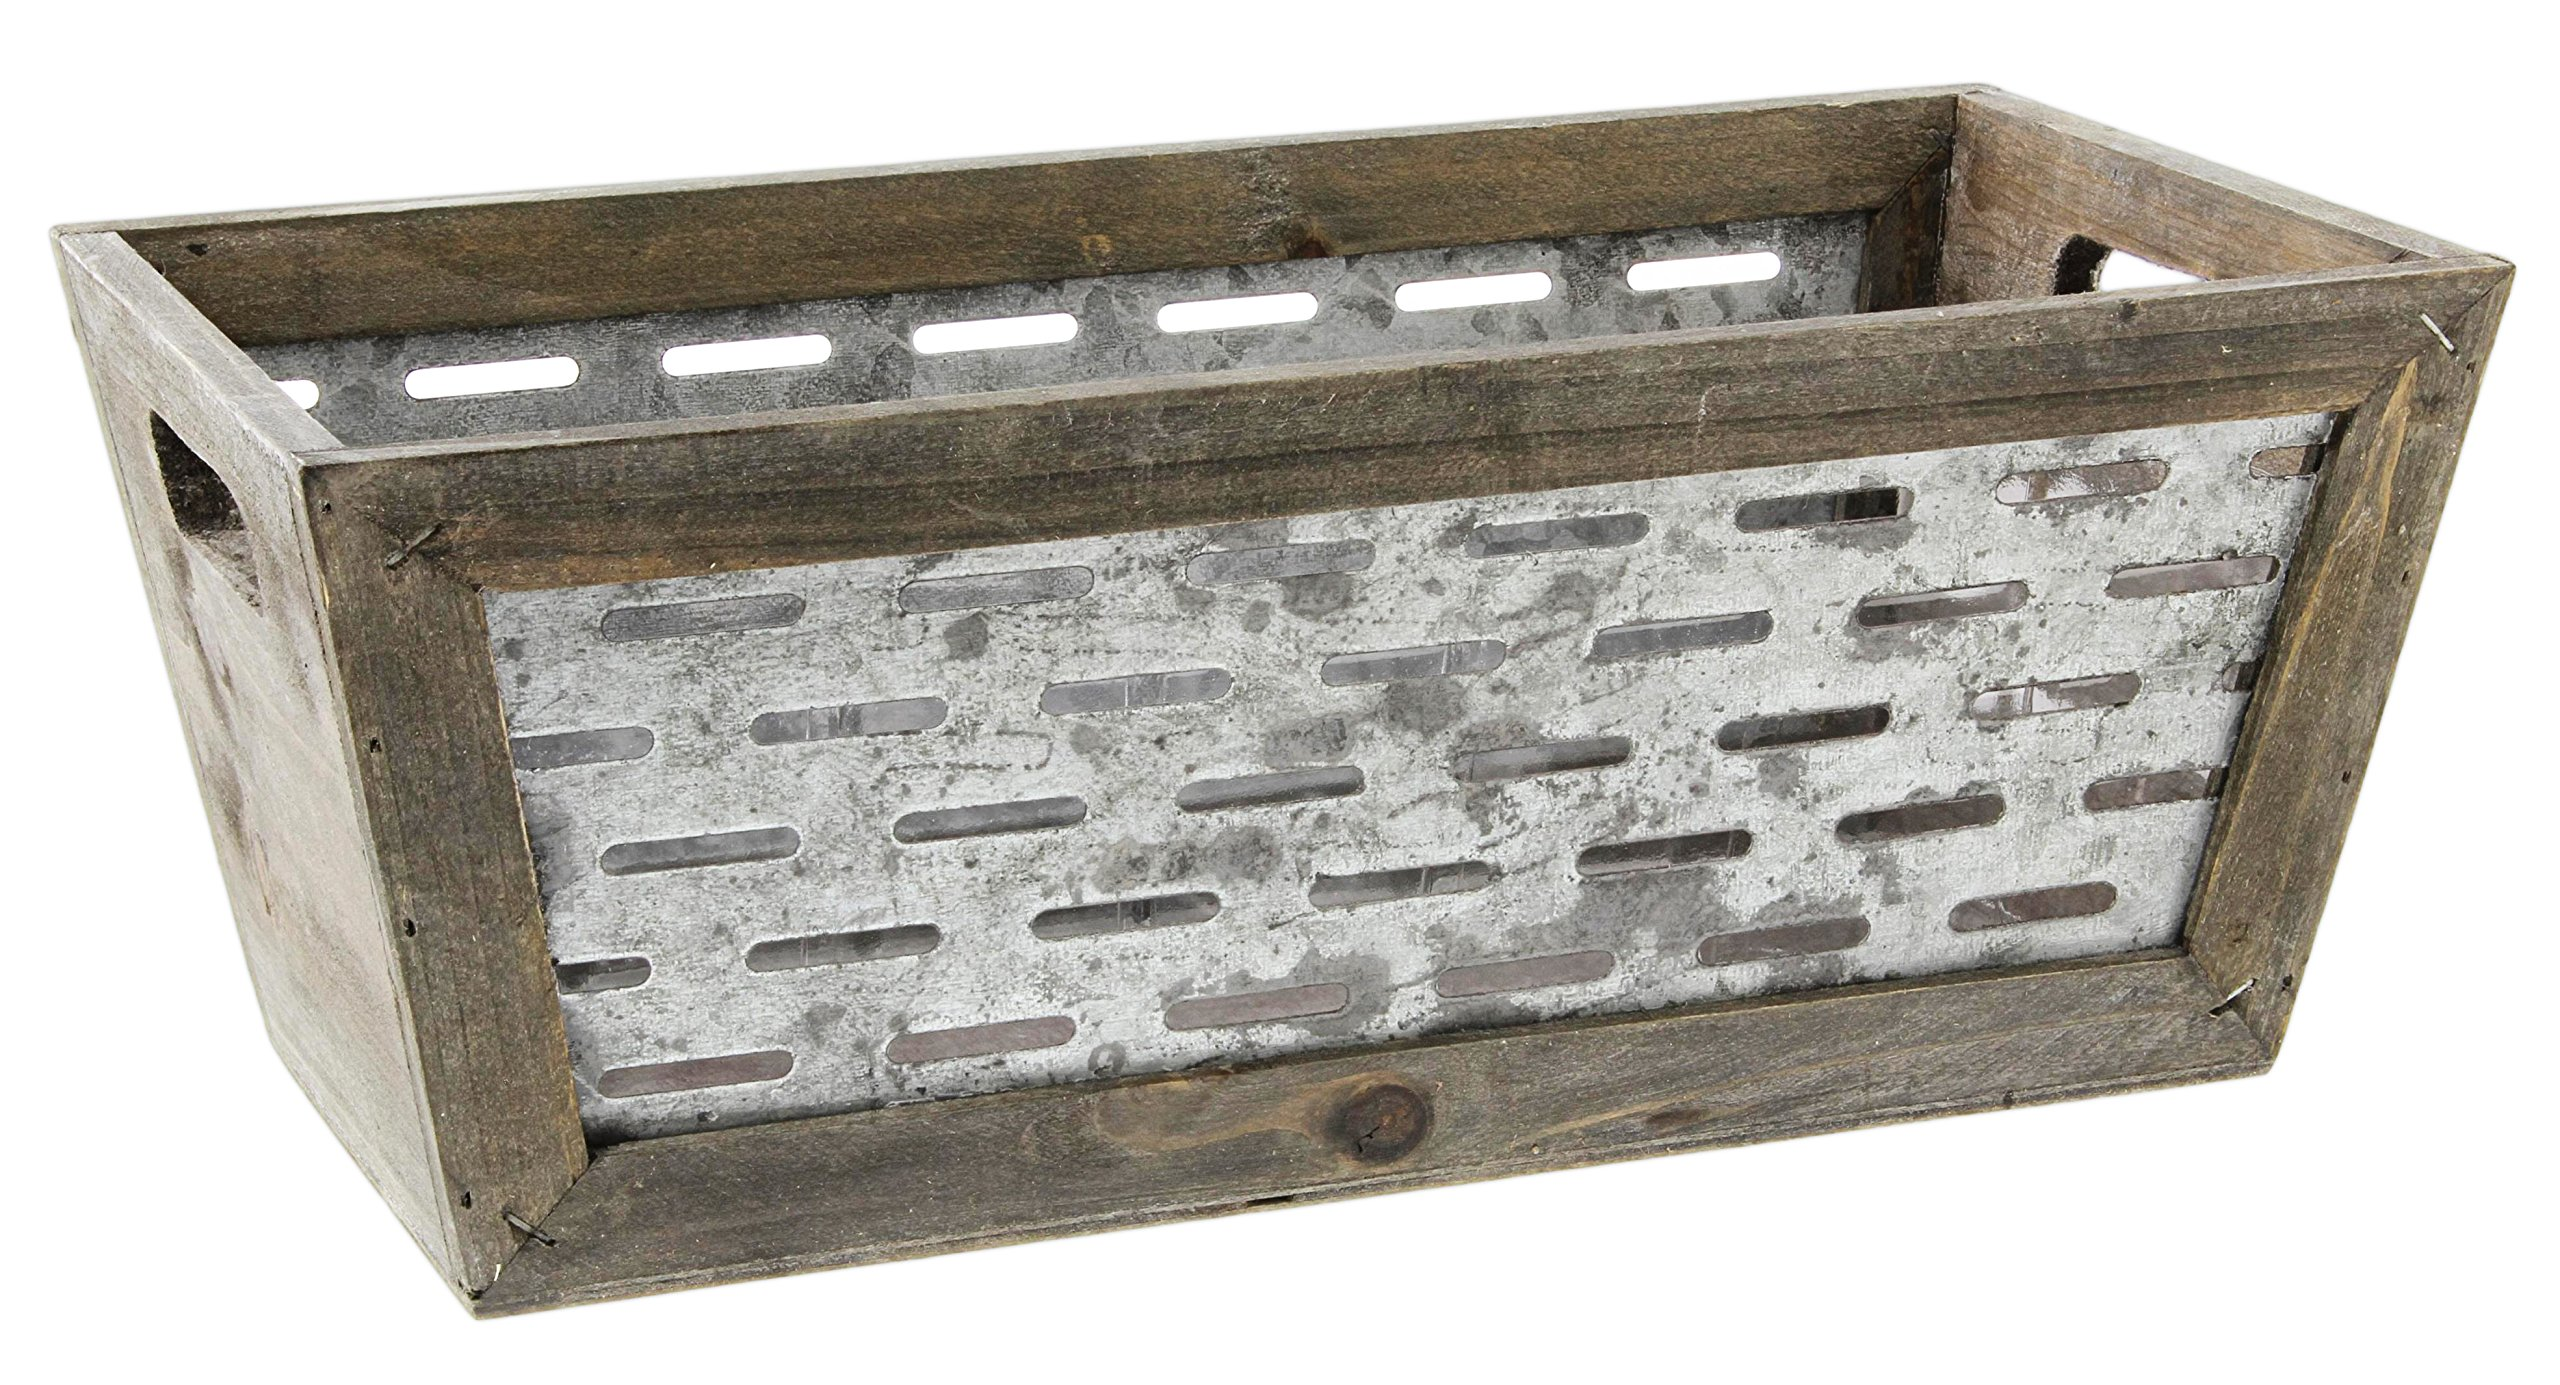 Lucky Winner Galvanized Metal & Wood Crate (15'') by Lucky Winner (Image #1)